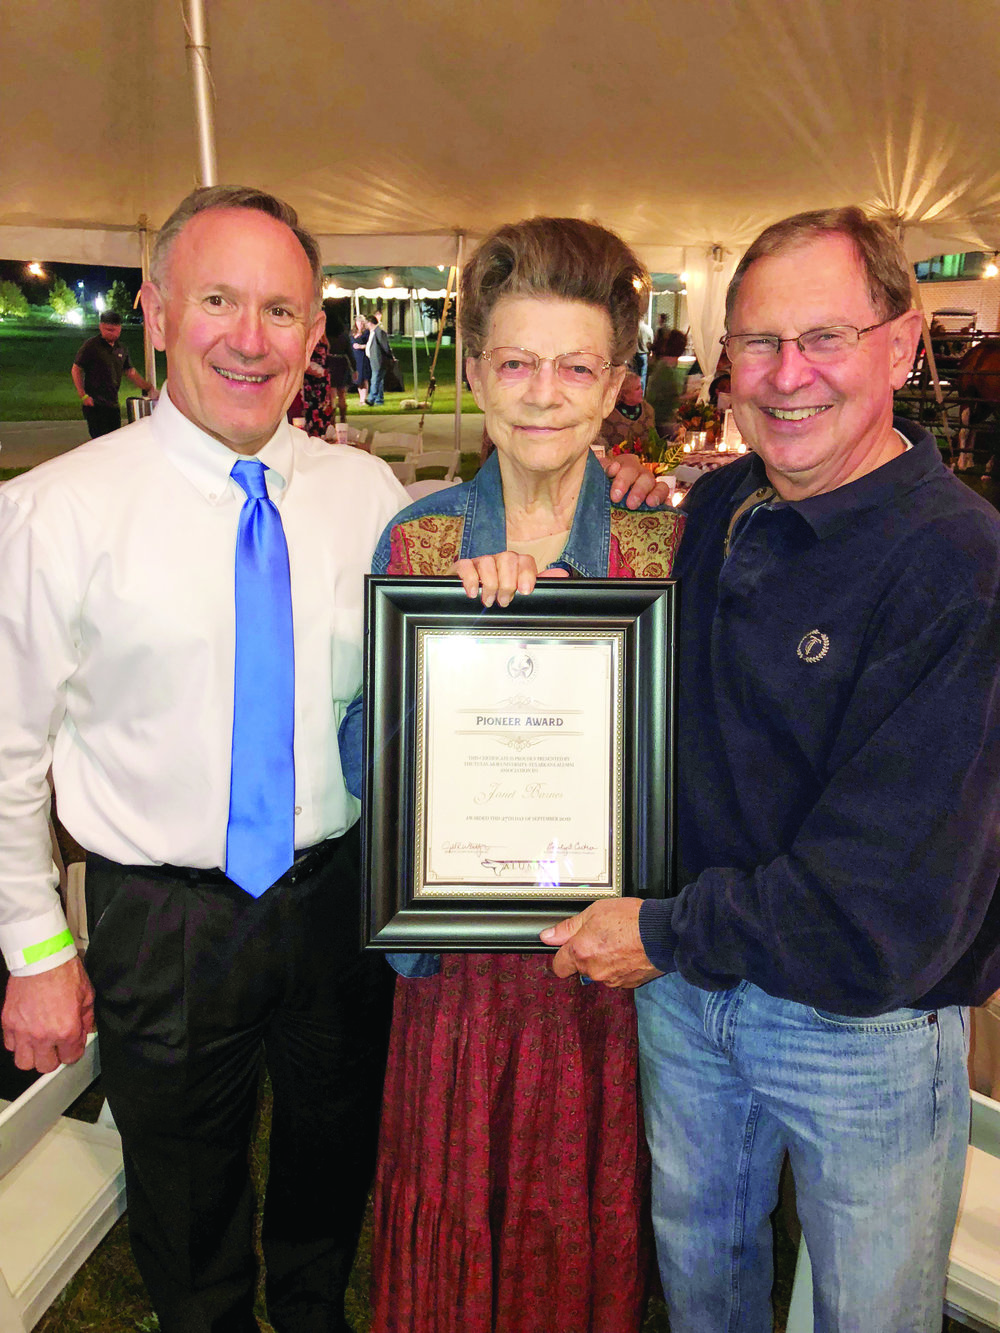 Former Texarkana mayors James Bramlett and Danny Gray present Janet with the Pioneer Award during the annual Alumni Association event last September.